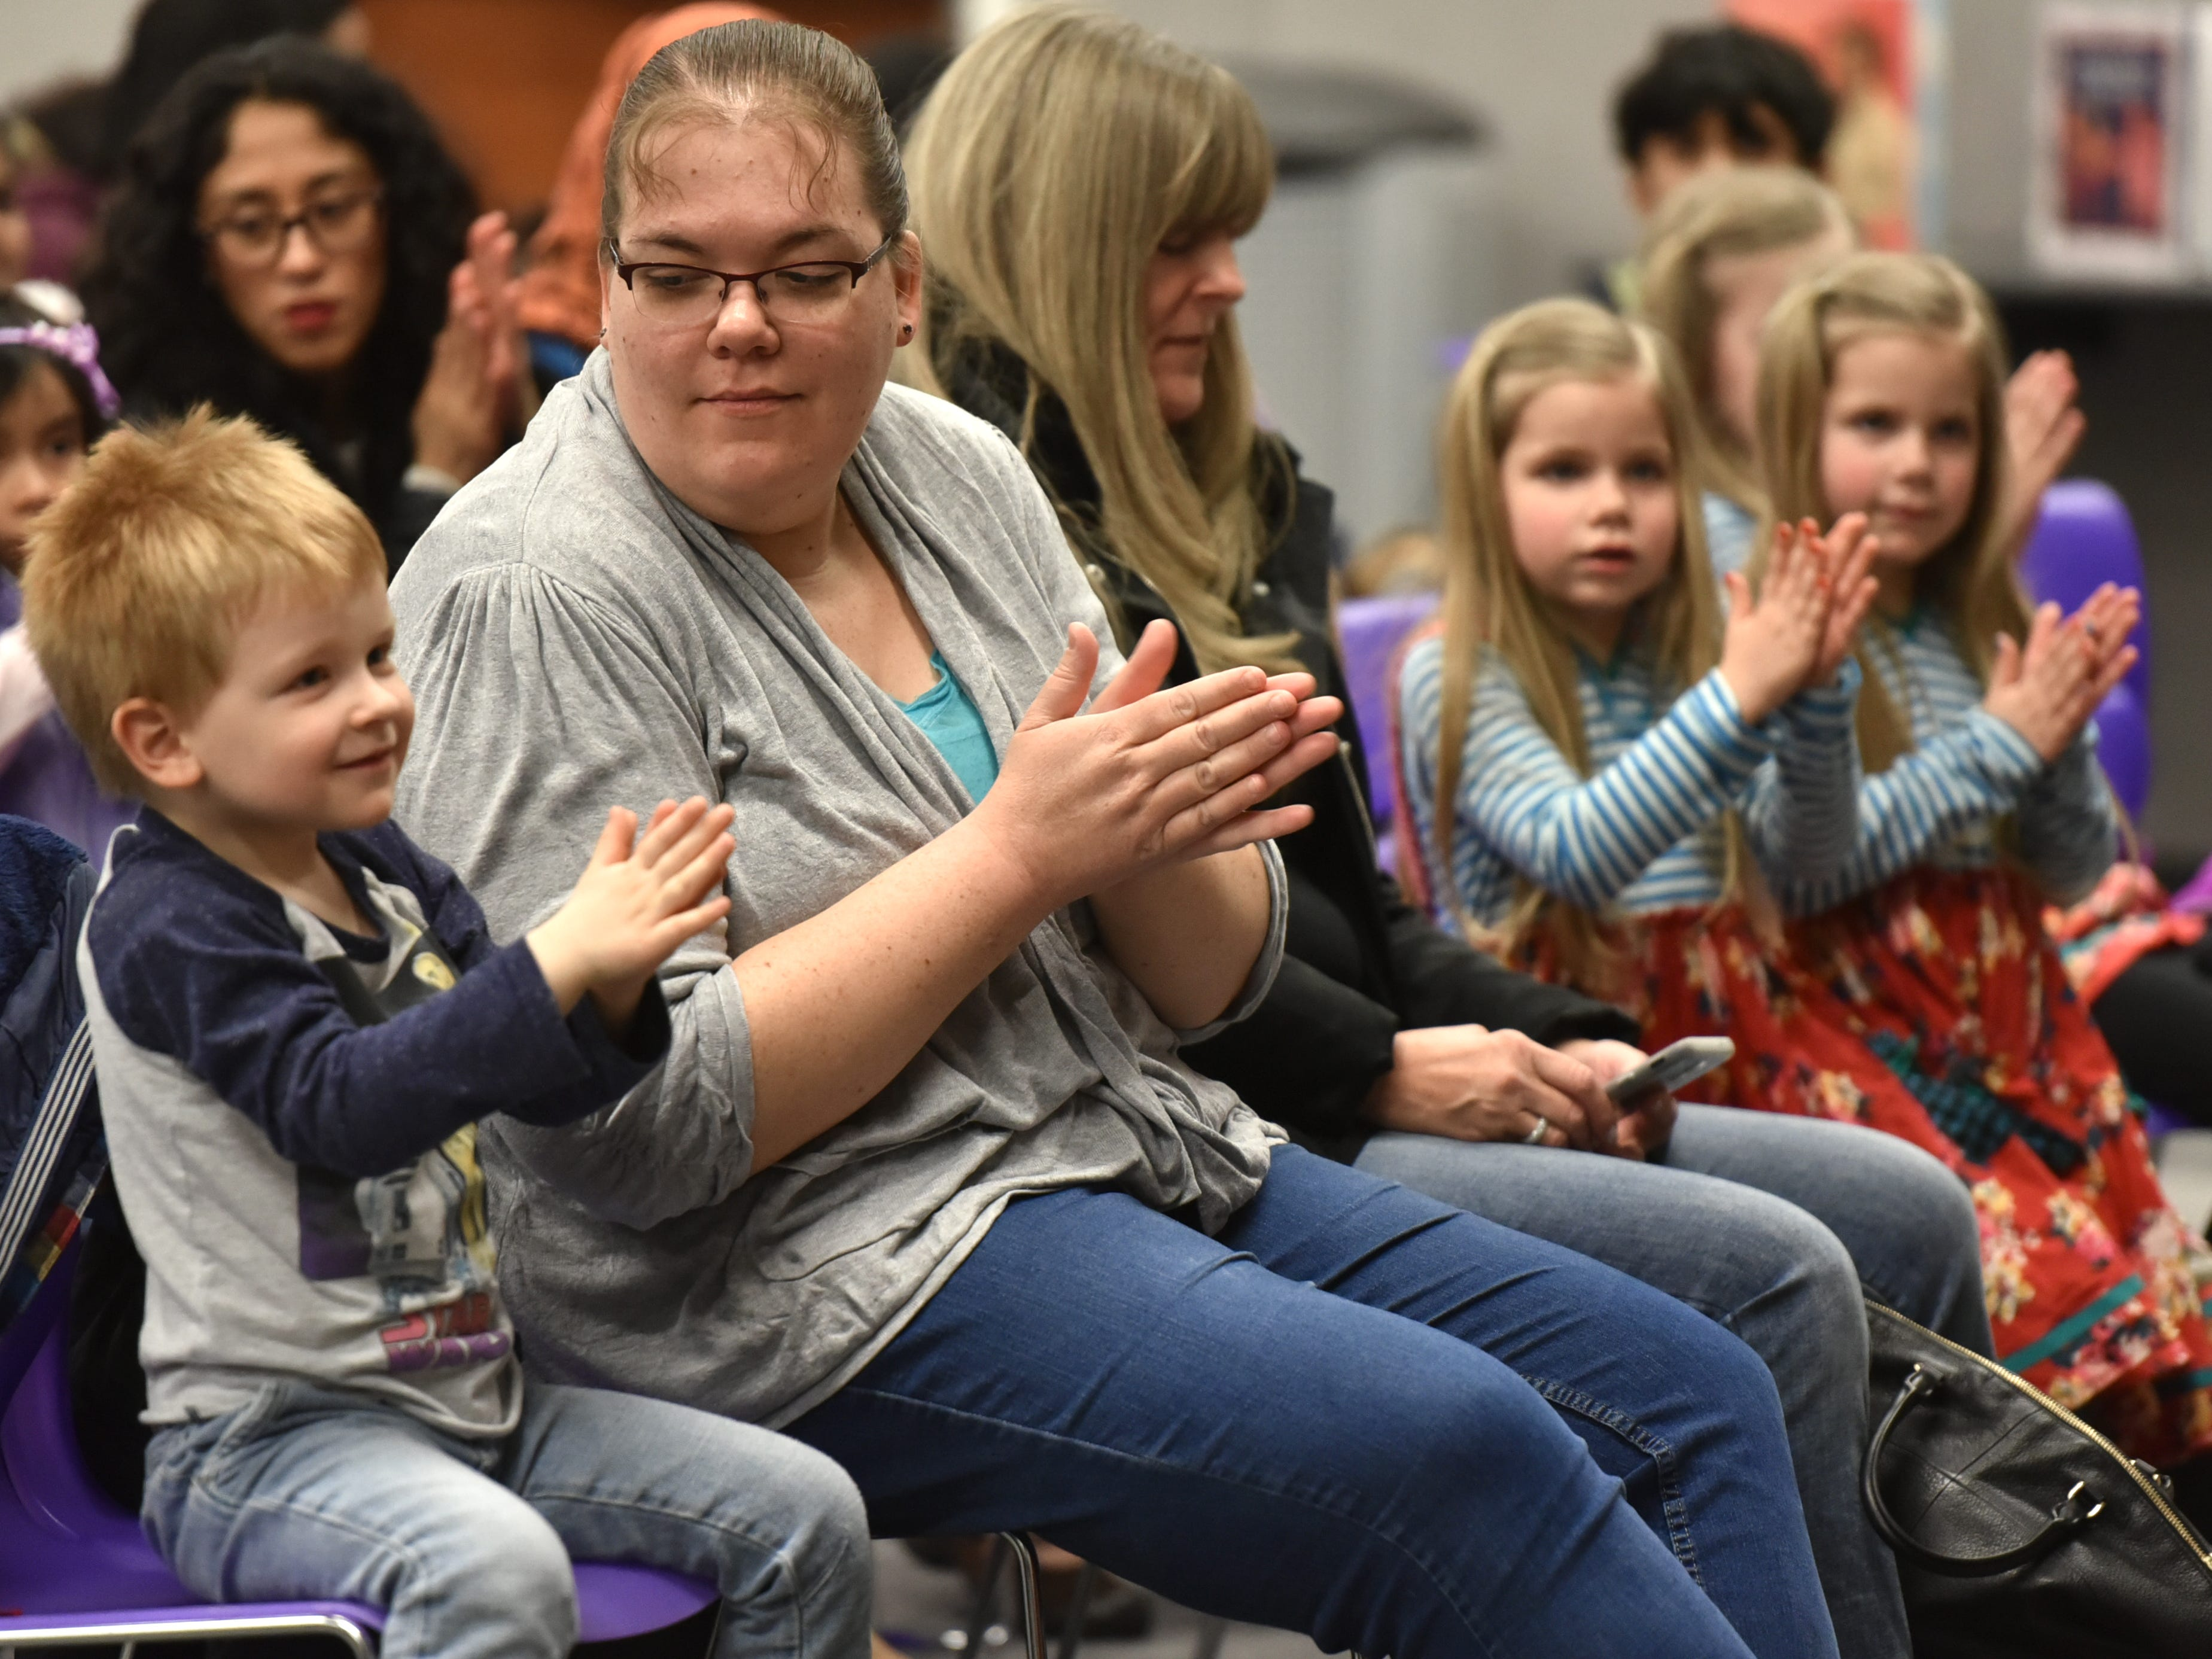 Magician and puppeteer Eugene Clark gets some applause from his audience during his April 2 visit to the Farmington Hills Library.